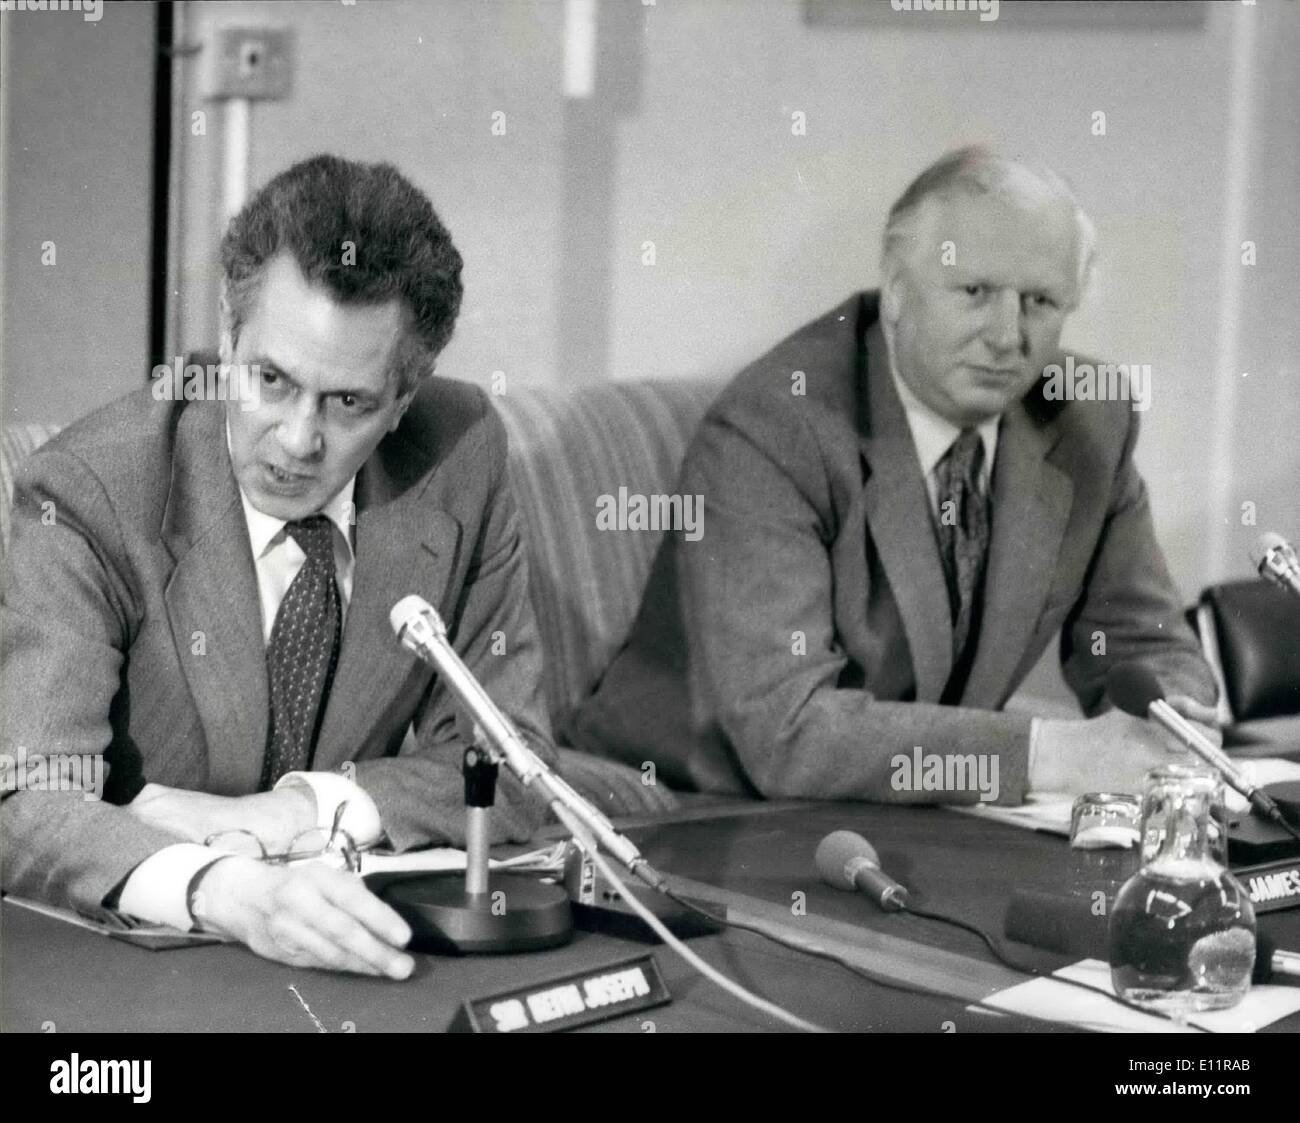 Jan. 01, 1980 - STEEL STRIKE LEADER MEET SIR KEITH JOSEPH AID MR PRIOR AT THE INDUSTRY DEPARTMENT IN LONDON New Stock Photo